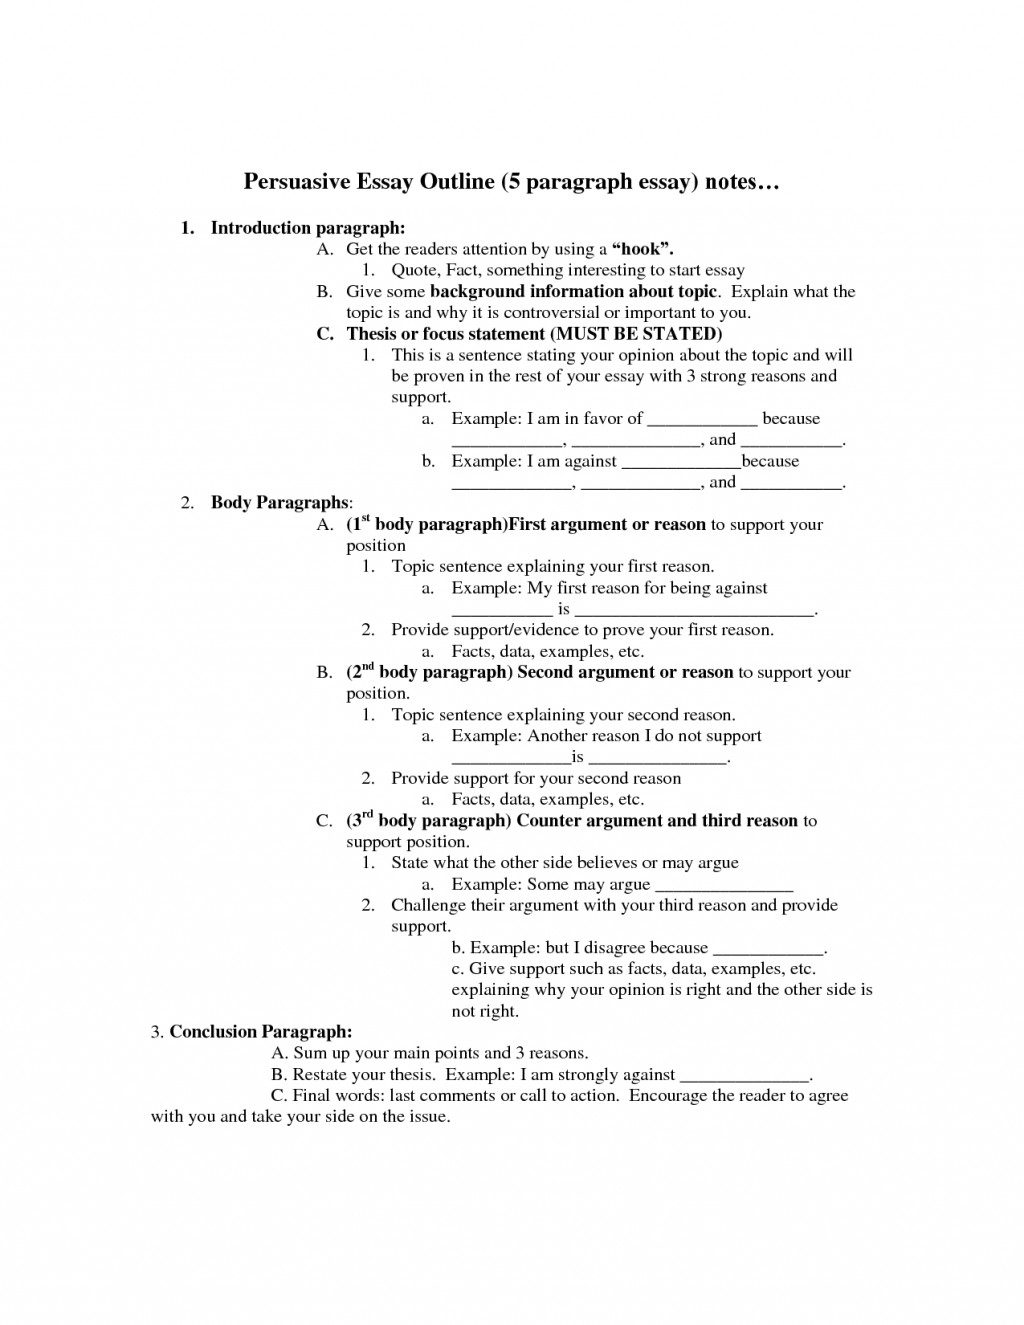 002 Persuasive Essay Outline Example Top Apa Format Template Word 2010 Large